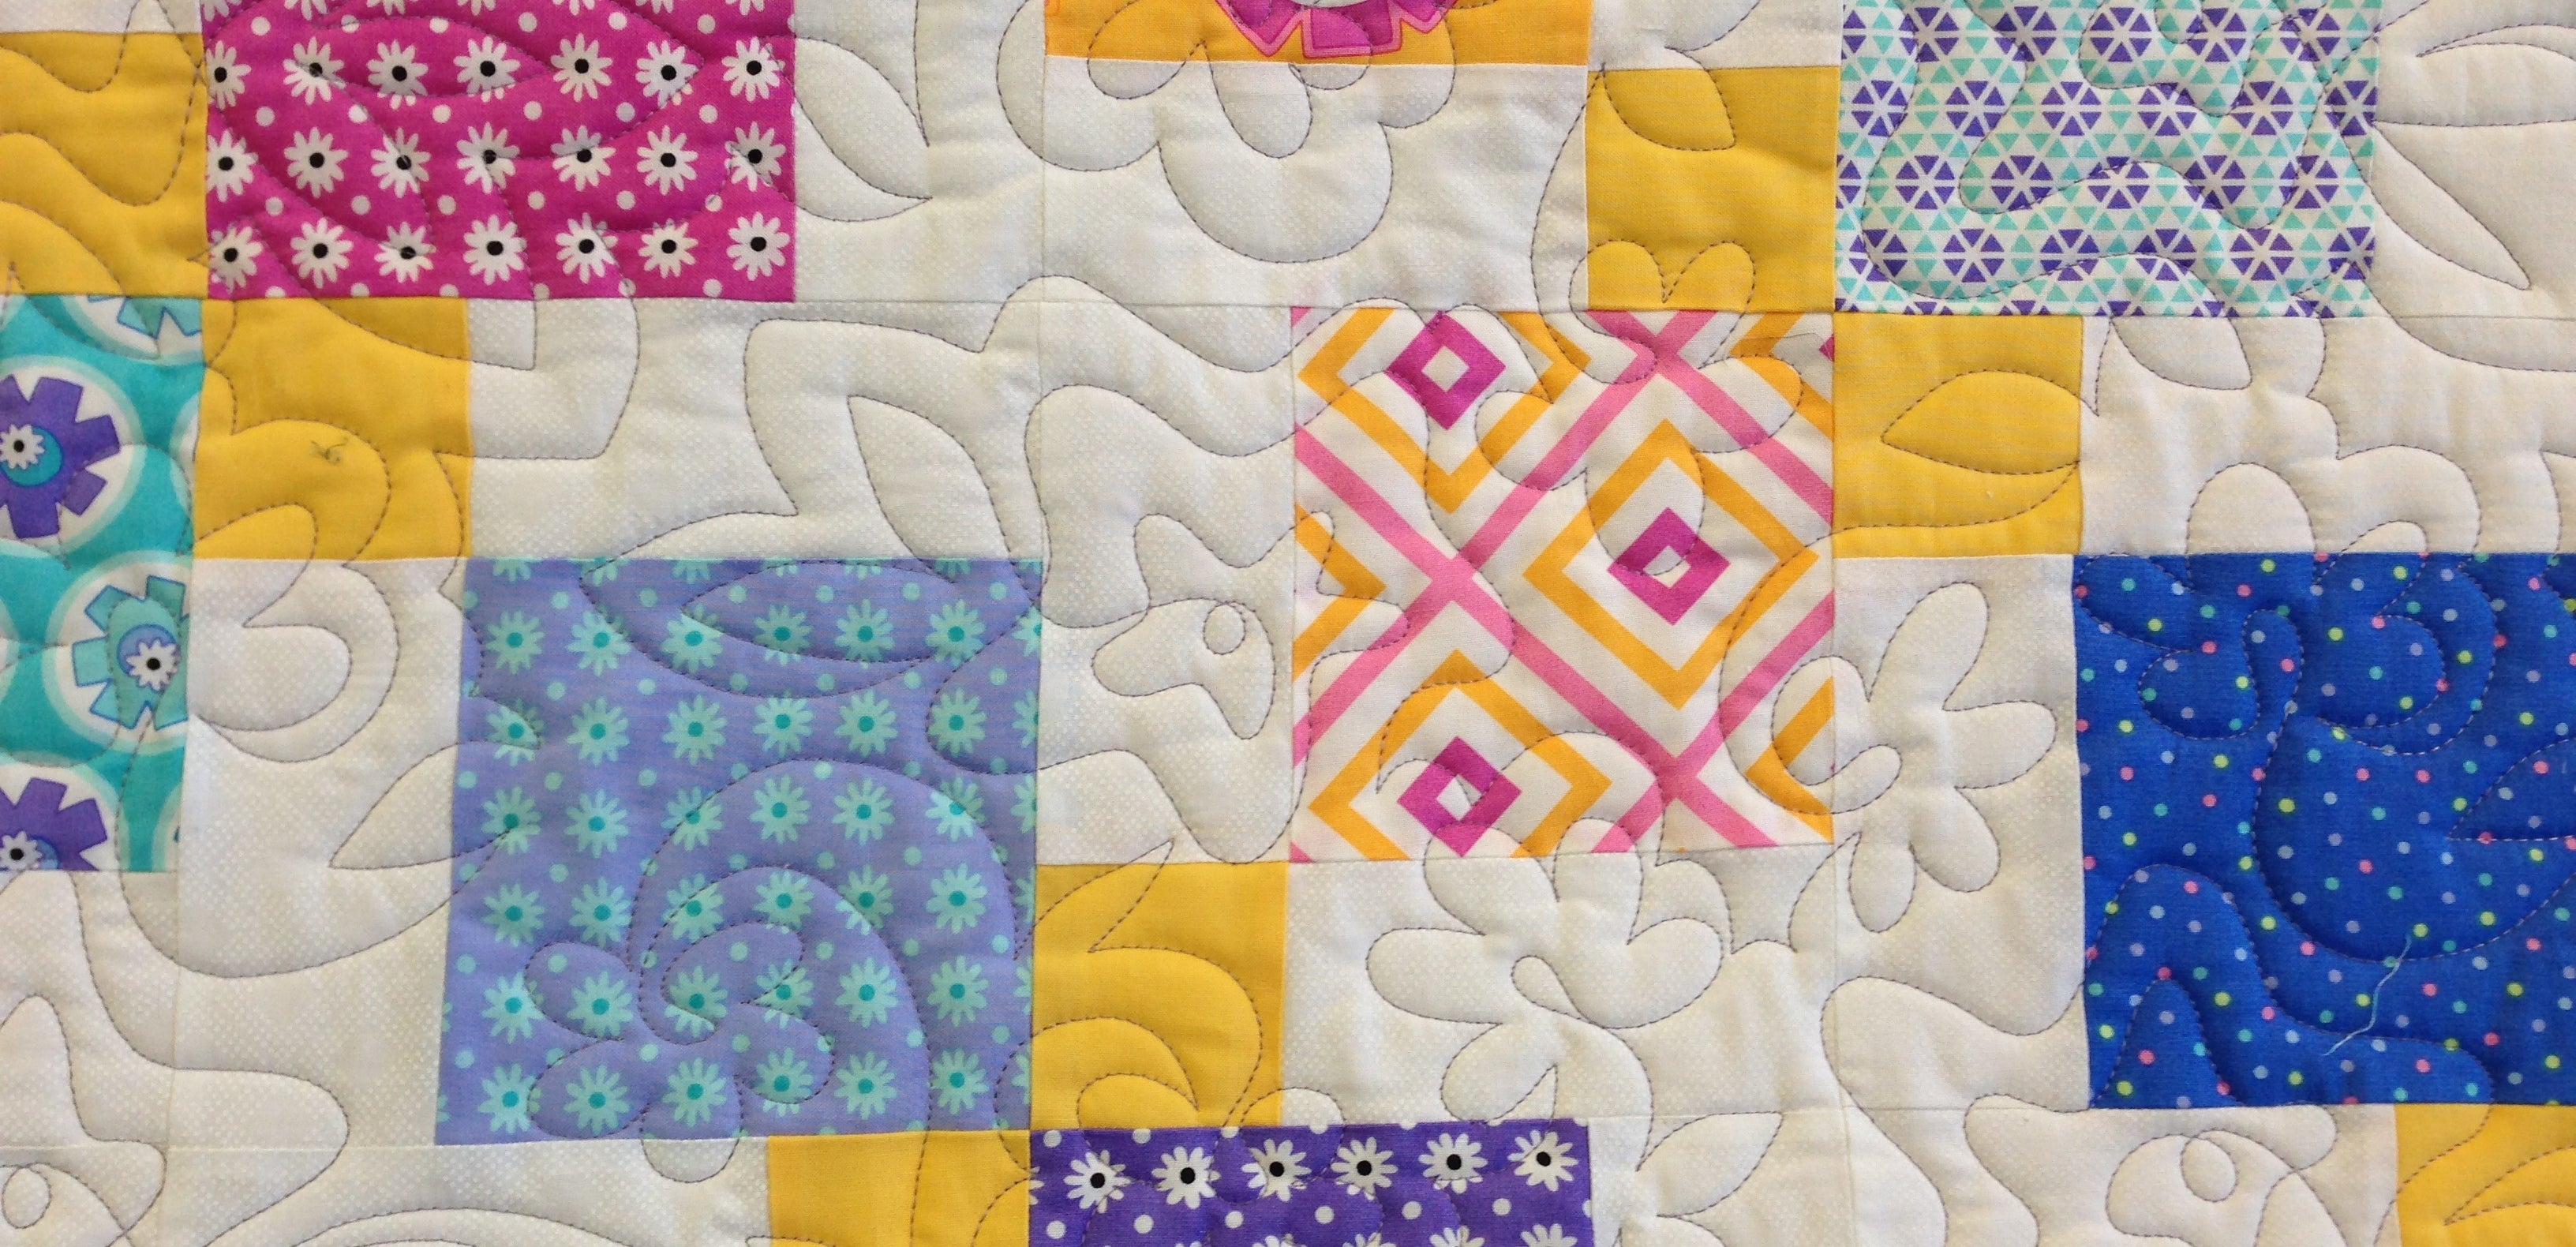 Disappearing 9 patch using Moda Hubba Bubba - pantograph quilting by Suzy Q